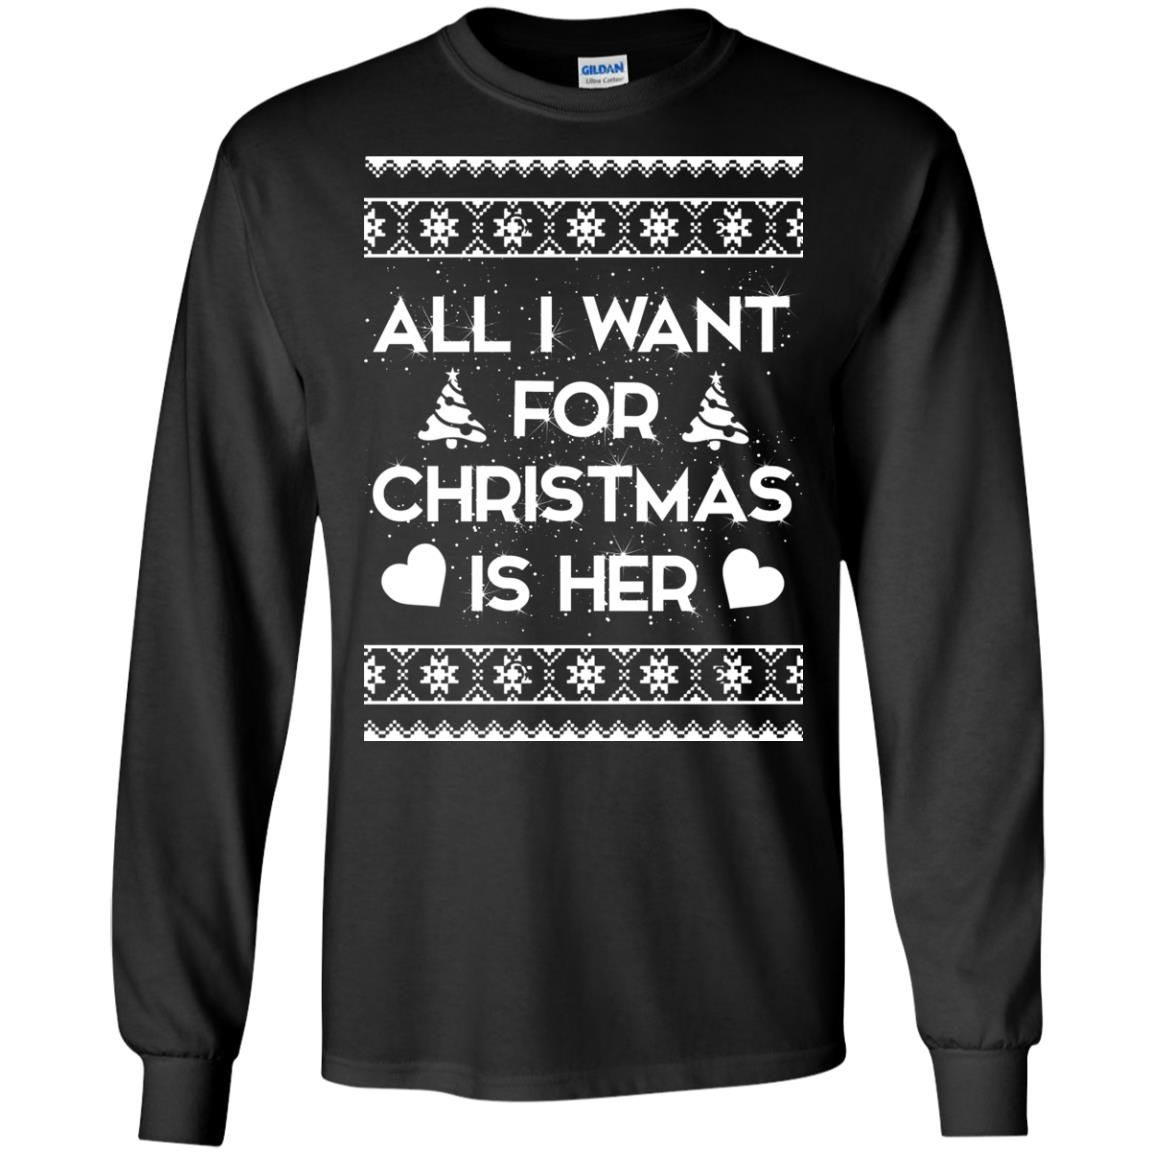 image 2383 - Couple Sweatshirt: All I Want For Christmas Is Her ugly Sweater, Shirt